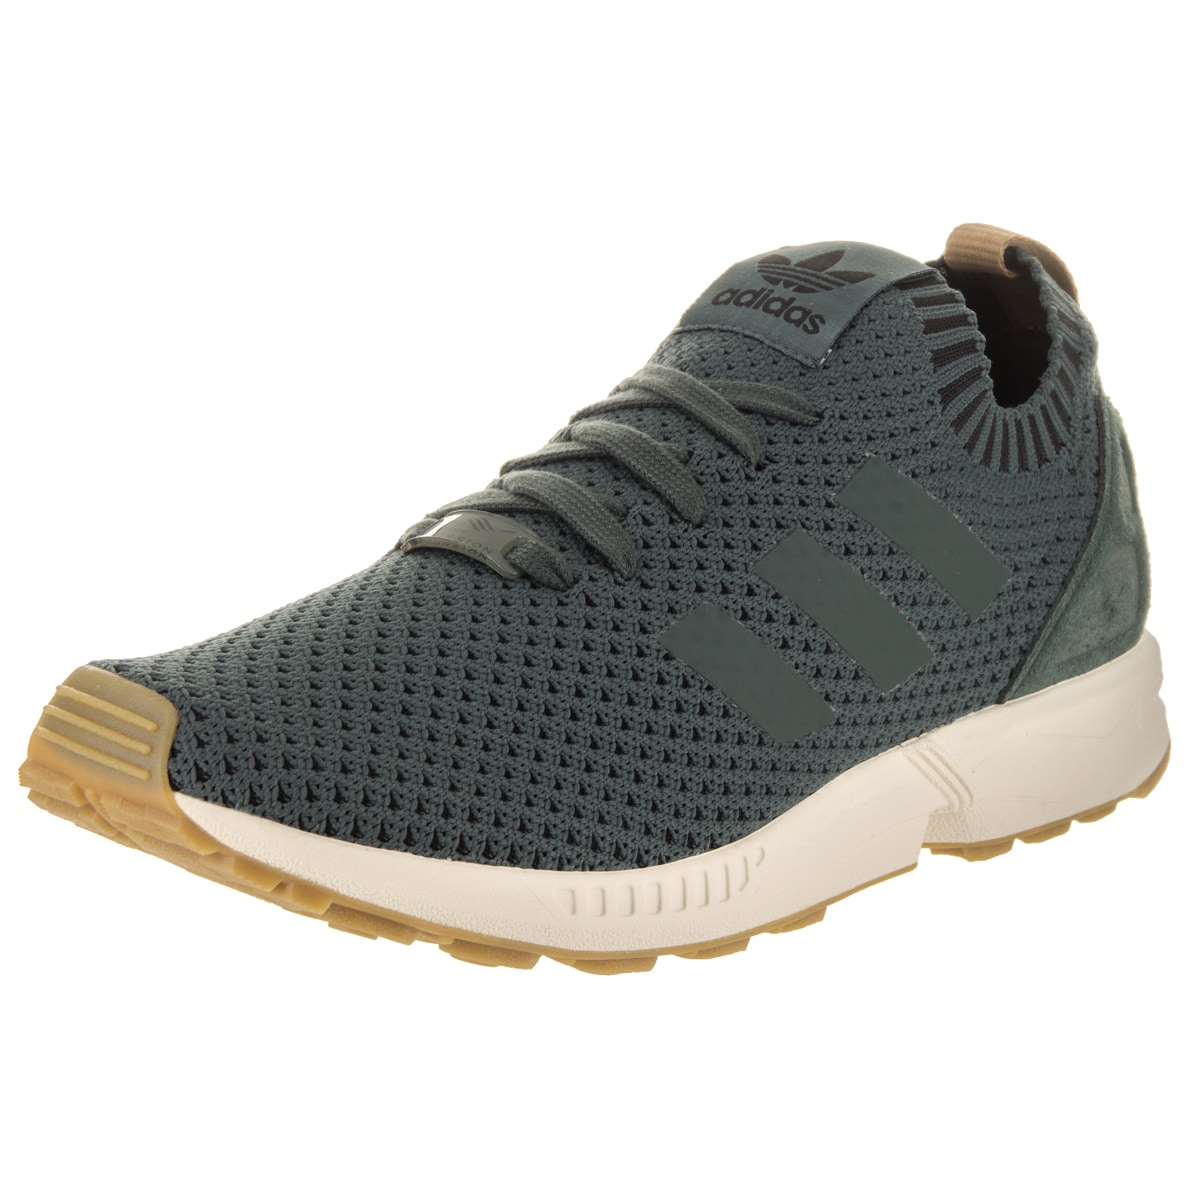 new arrival 83792 3db3c Shop Adidas Mens ZX Flux Pk Originals Green Textile Casual Shoes - Free  Shipping Today - Overstock.com - 14231022